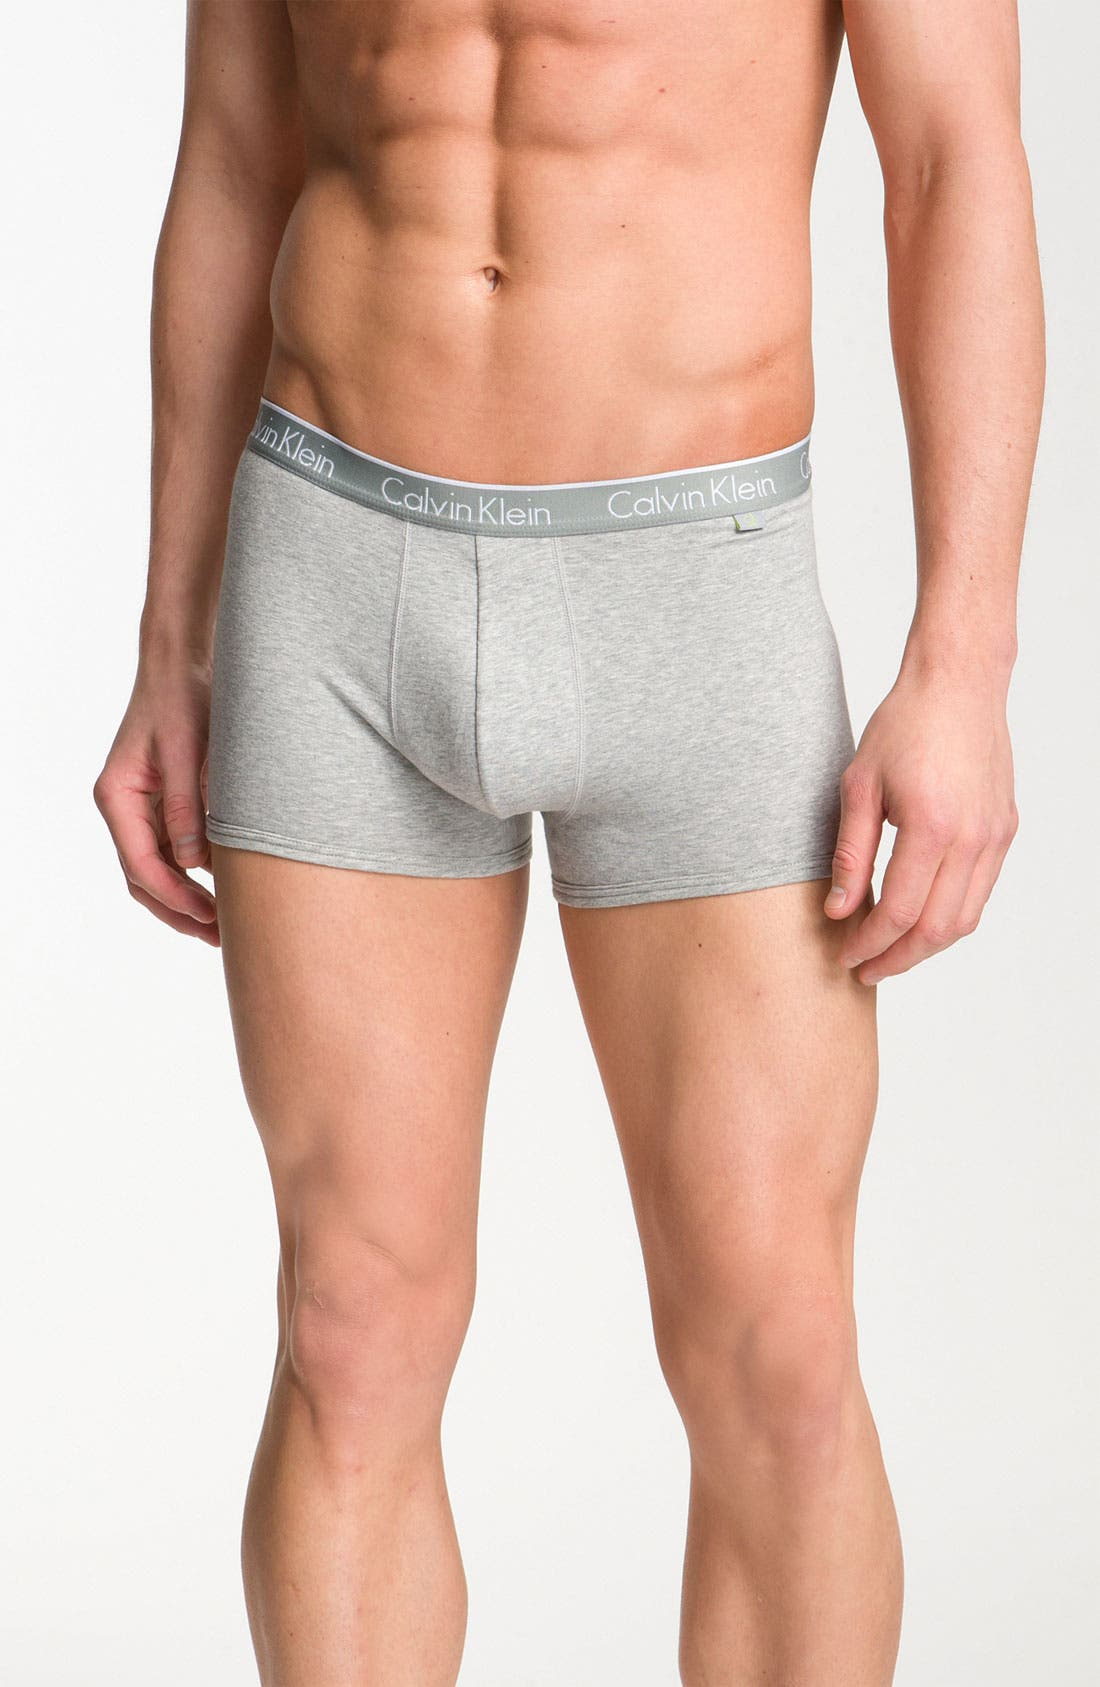 Alternate Image 1 Selected - Calvin Klein 'ck one' Trunks (Limited Edition)(Online Only)